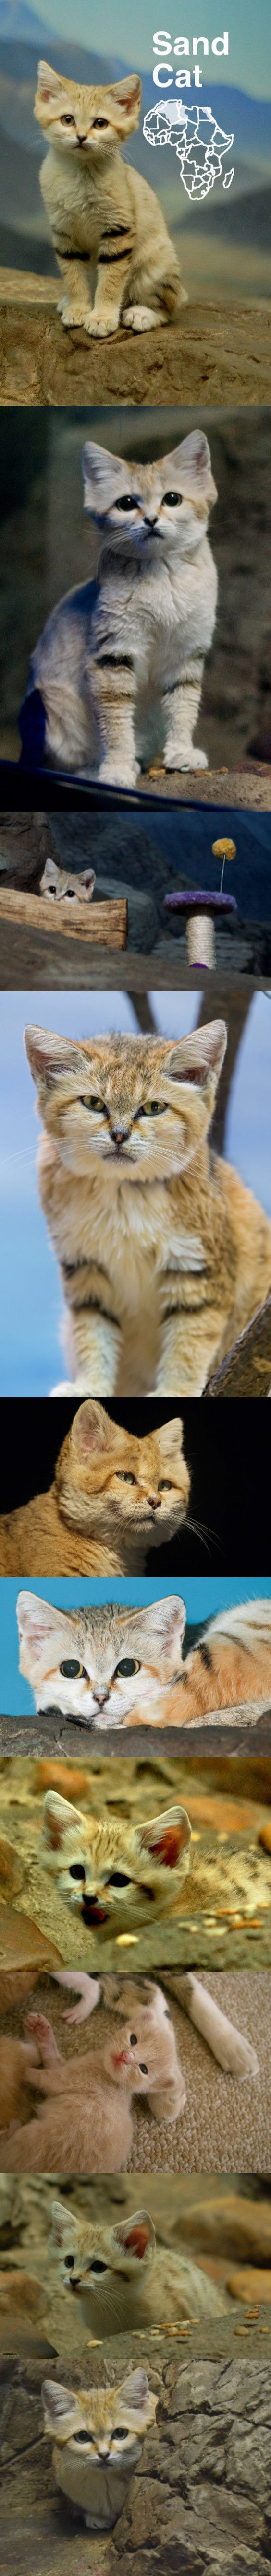 67 best Sand Cats images on Pinterest | Sand cat, Cute kittens and ...